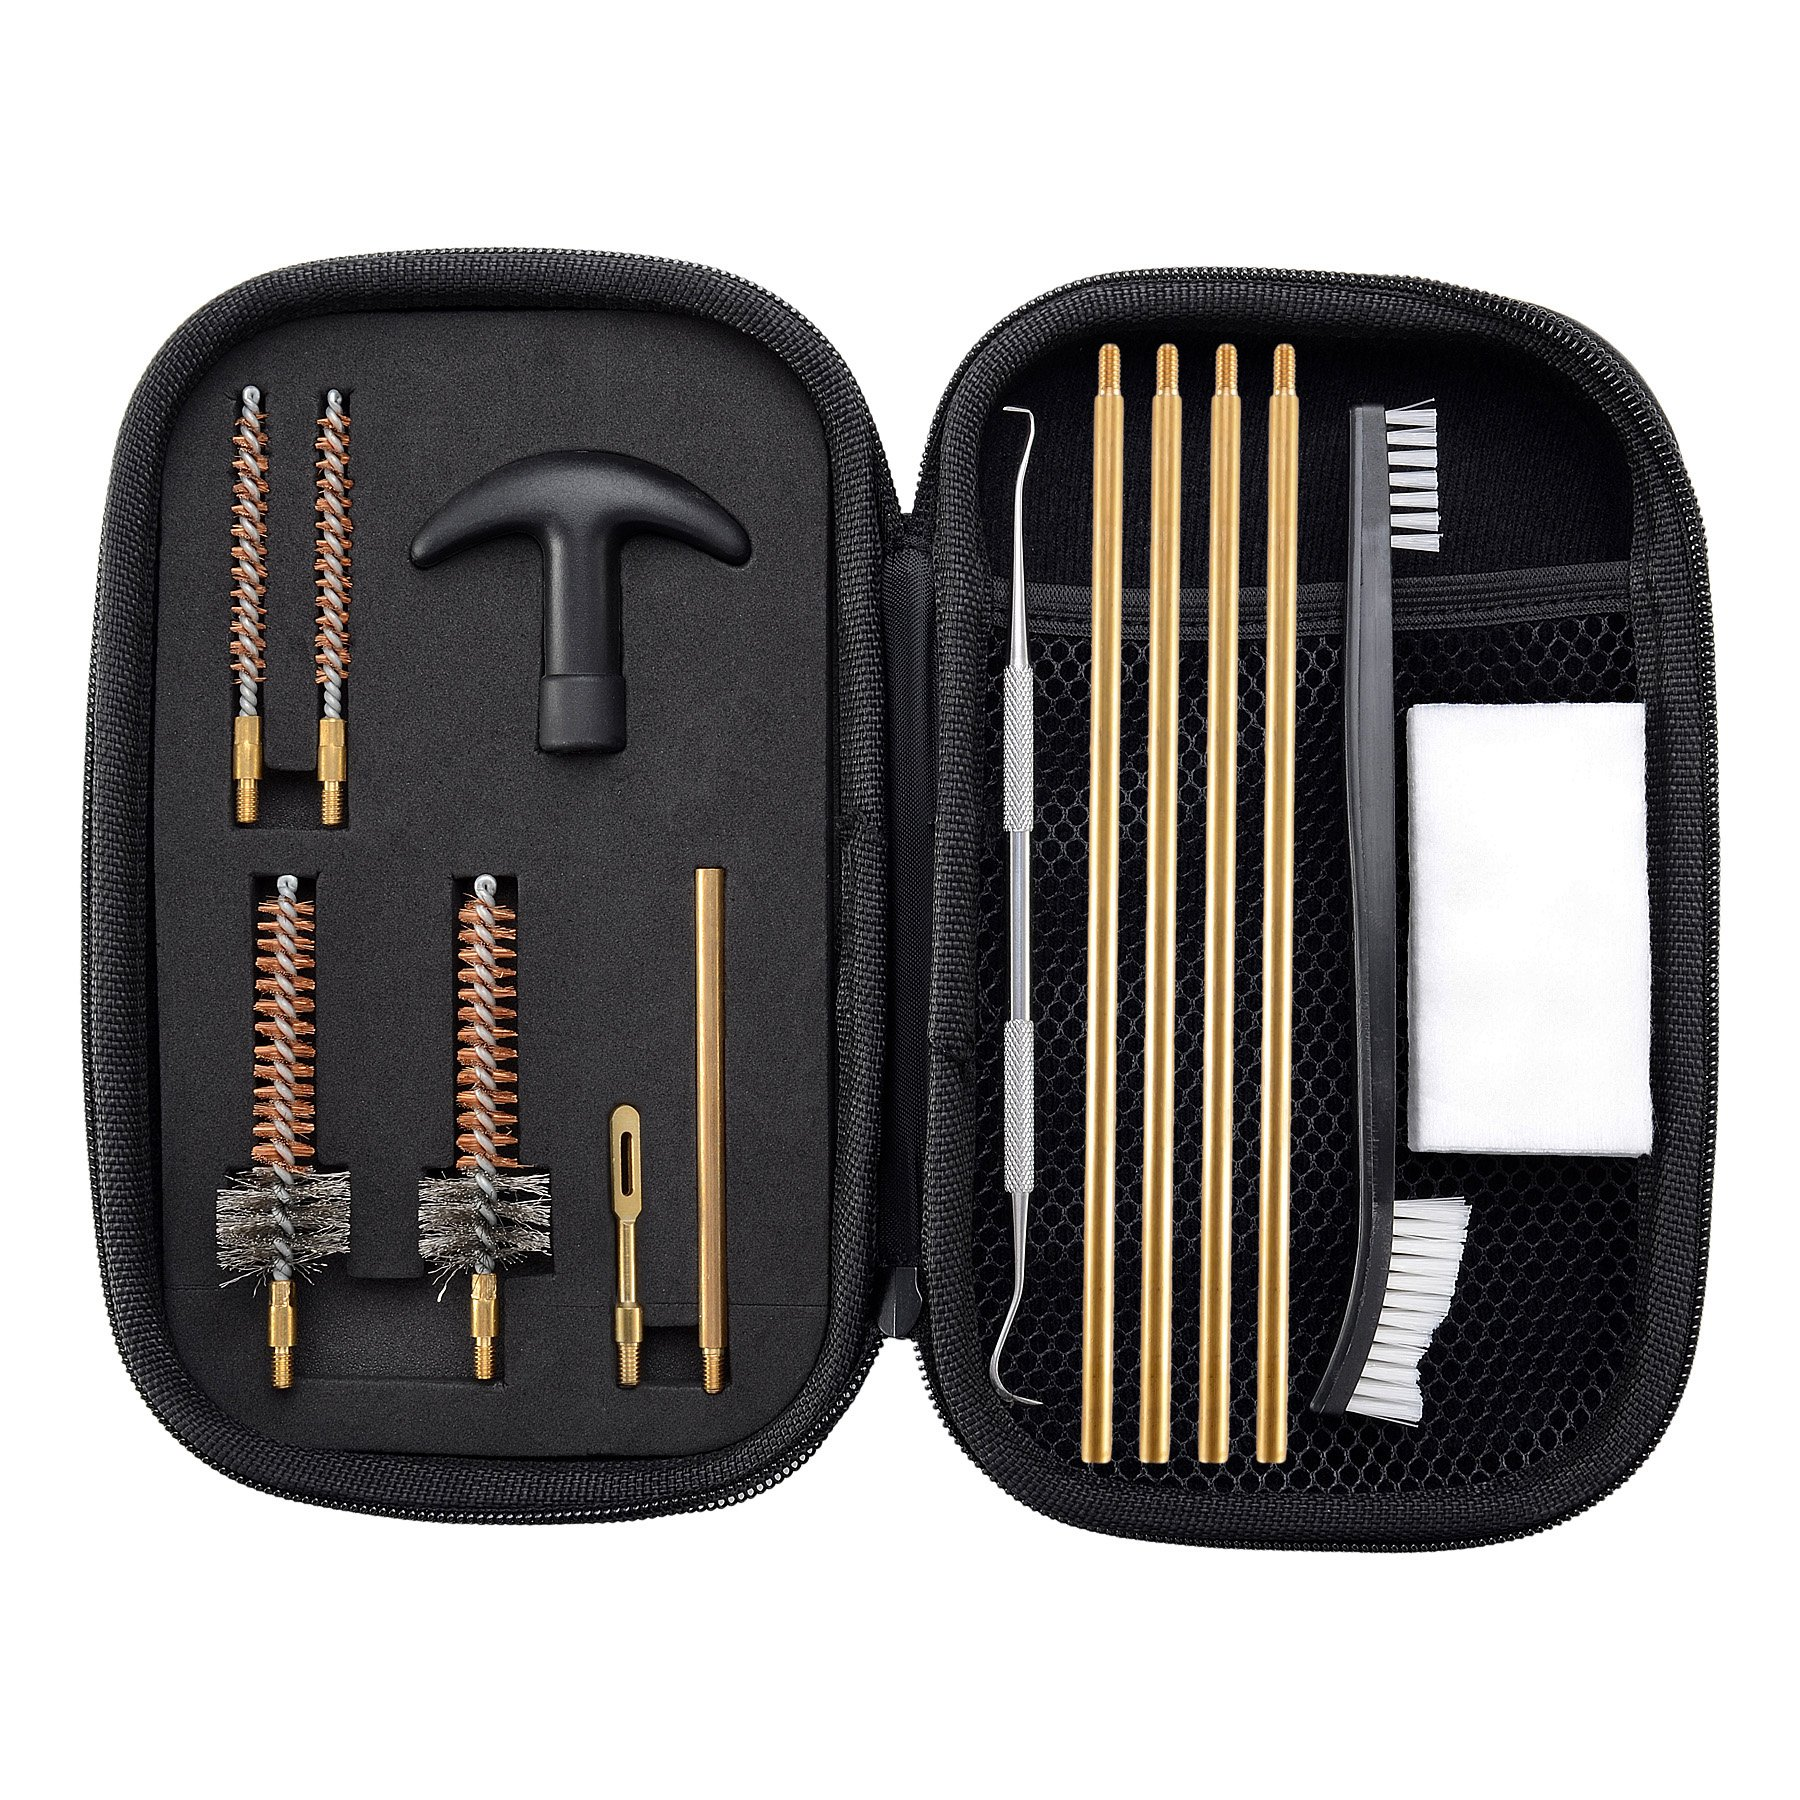 BOOSTEADY Pro .223/5.56 AR15/M16/M4 Rifle Gun Cleaning Kit with Bore Chamber Brushes Cleaning Pick Kit, Brass Cleaning Rod in Zippered Organizer Compact Case